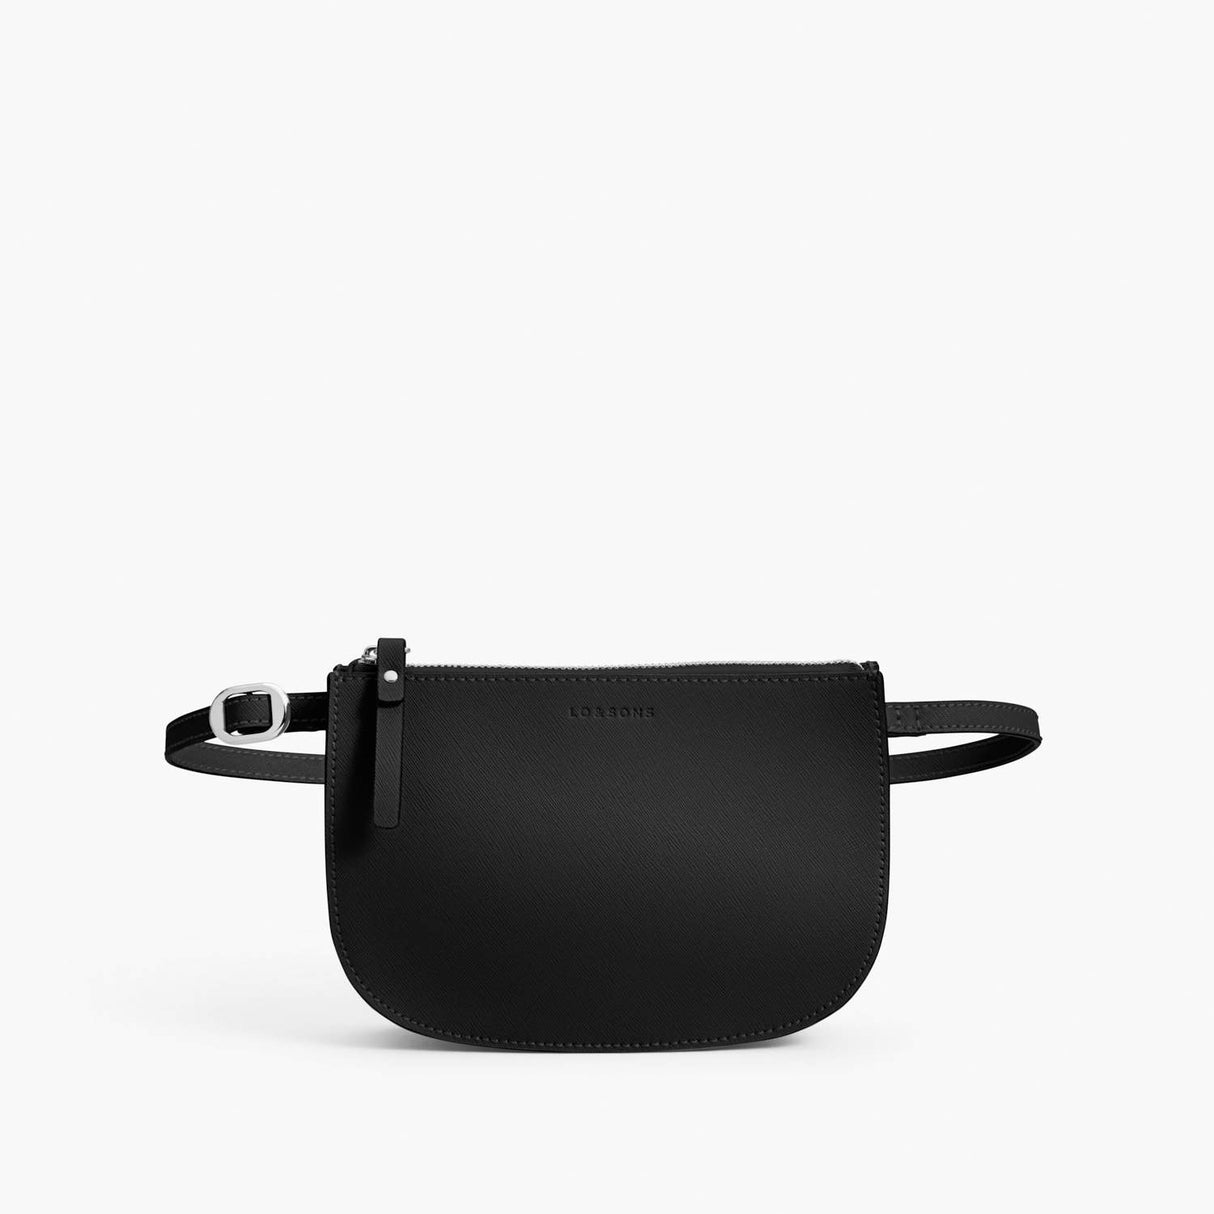 Front Belt - Waverley 2 - Saffiano Leather - Black / Silver / Grey - Crossbody Bag - Lo & Sons